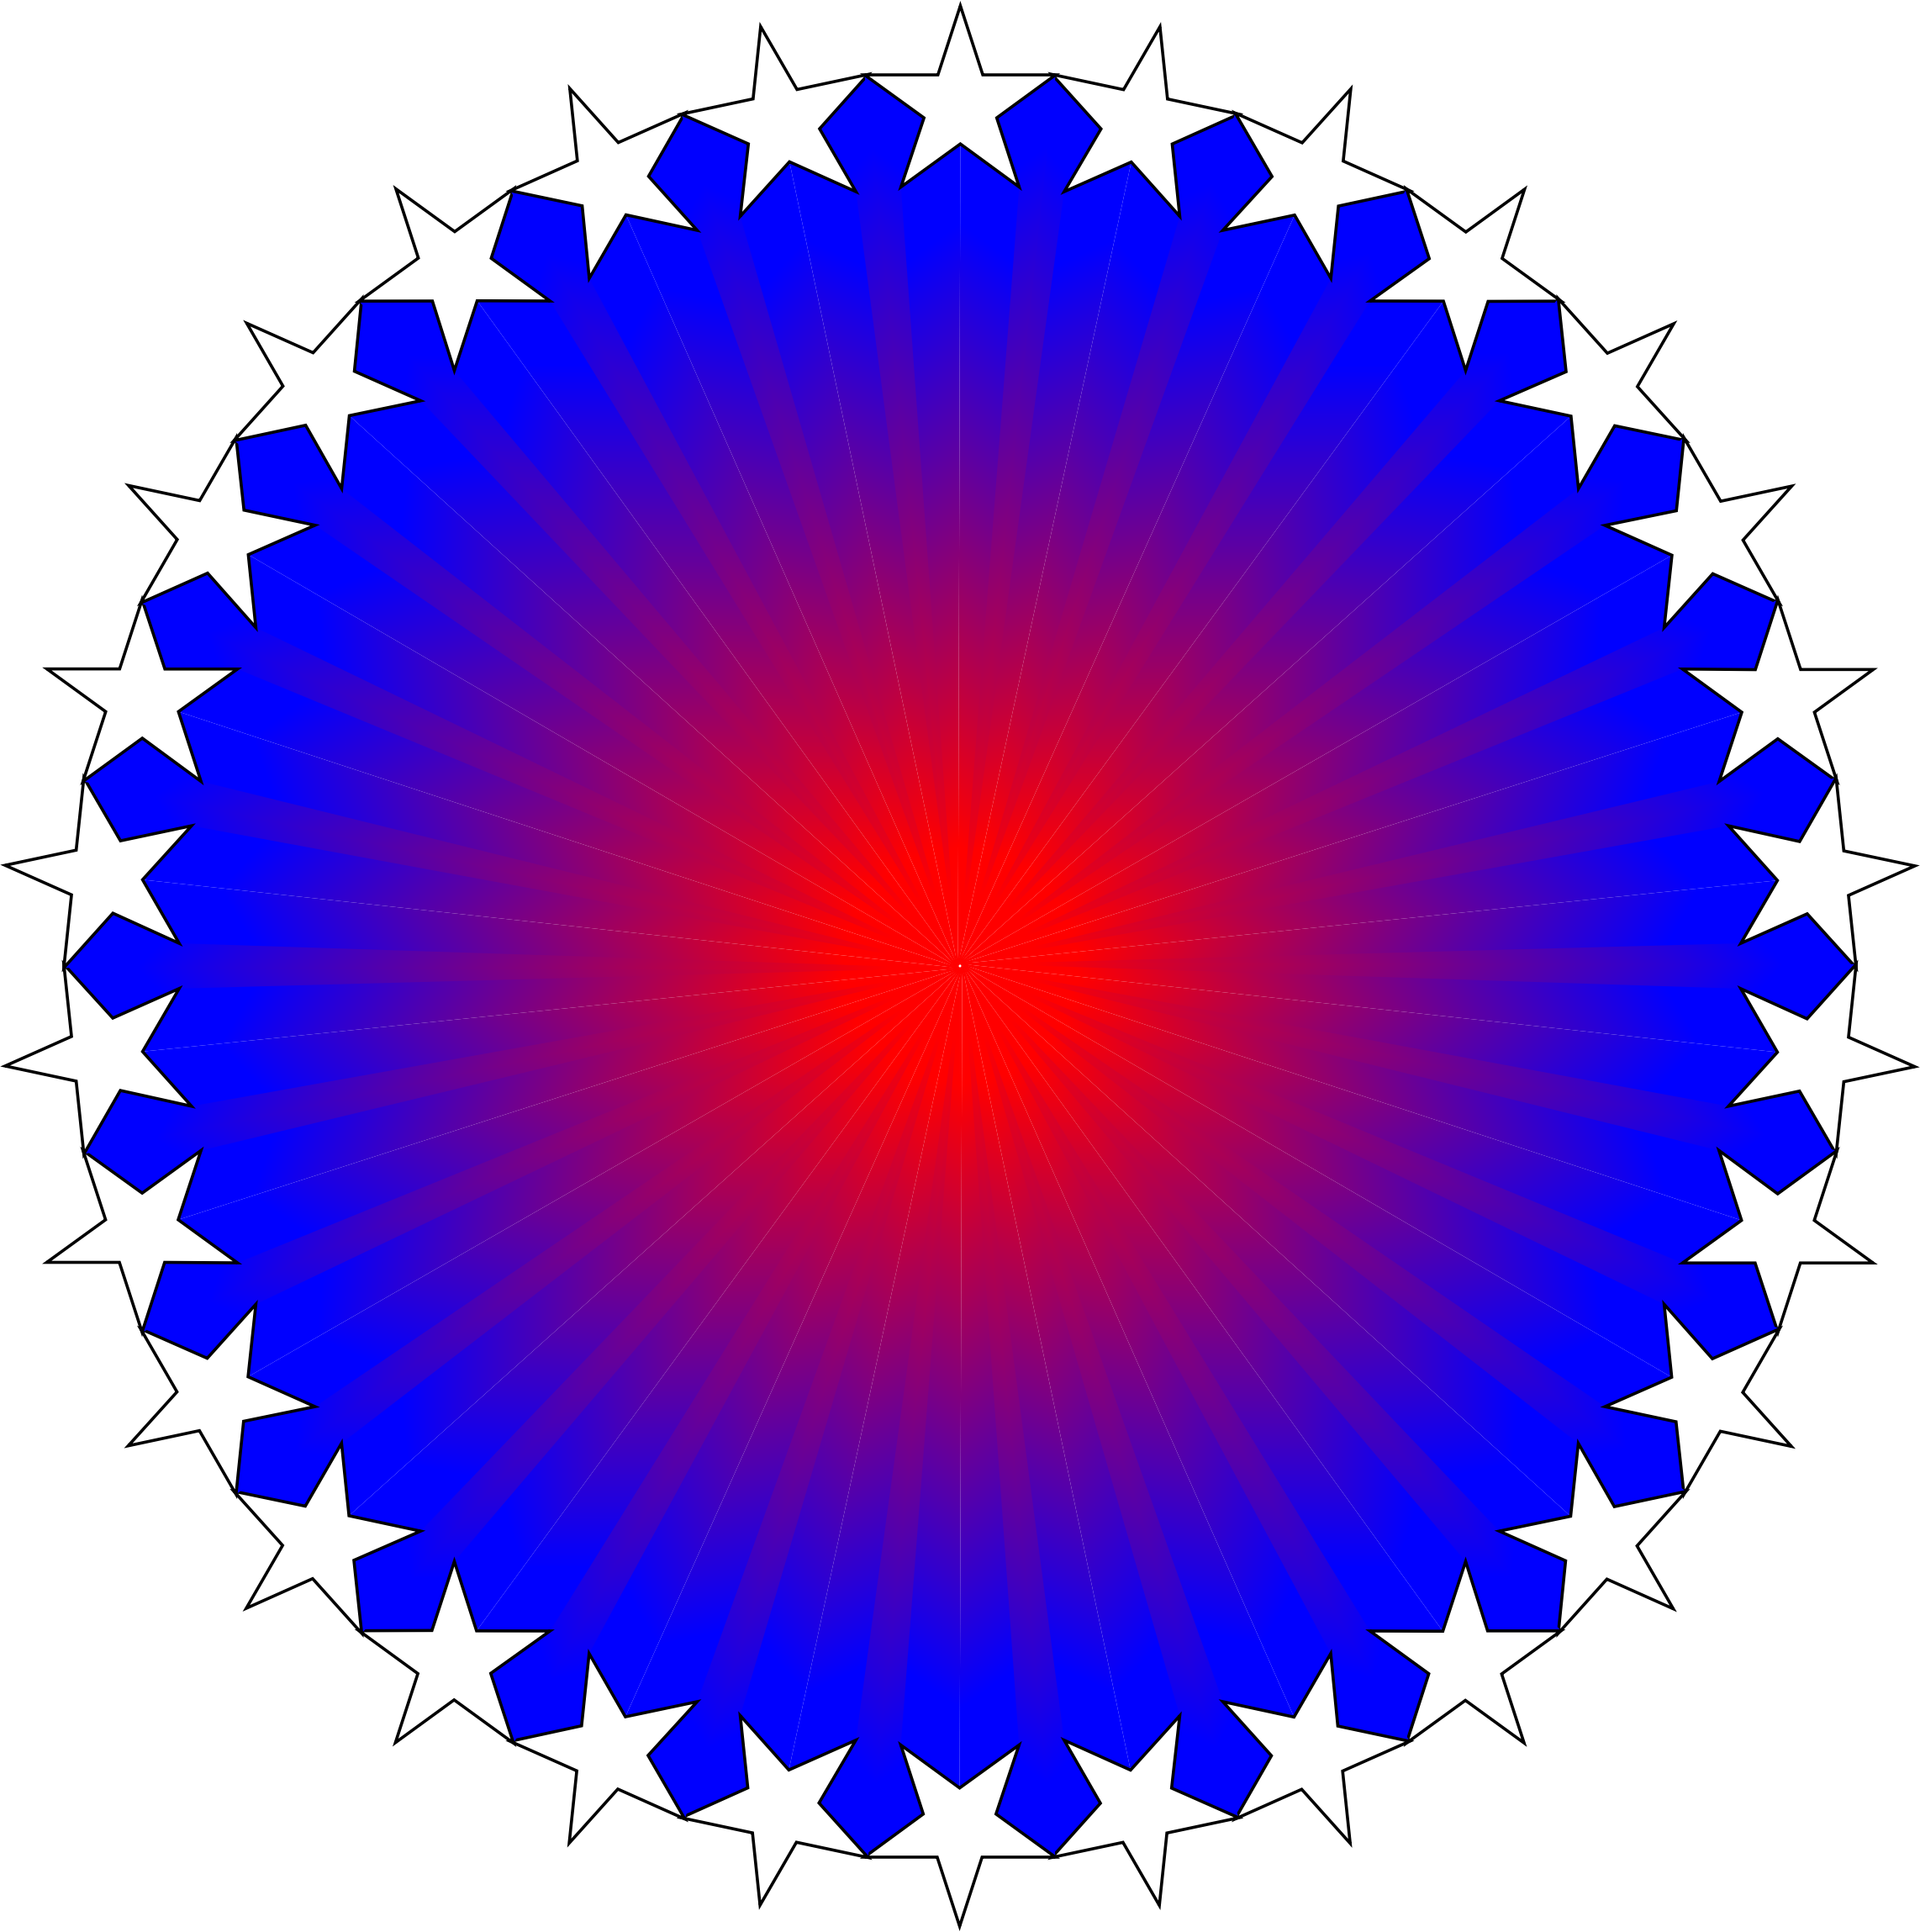 Red White Blue Starburst by GDJ